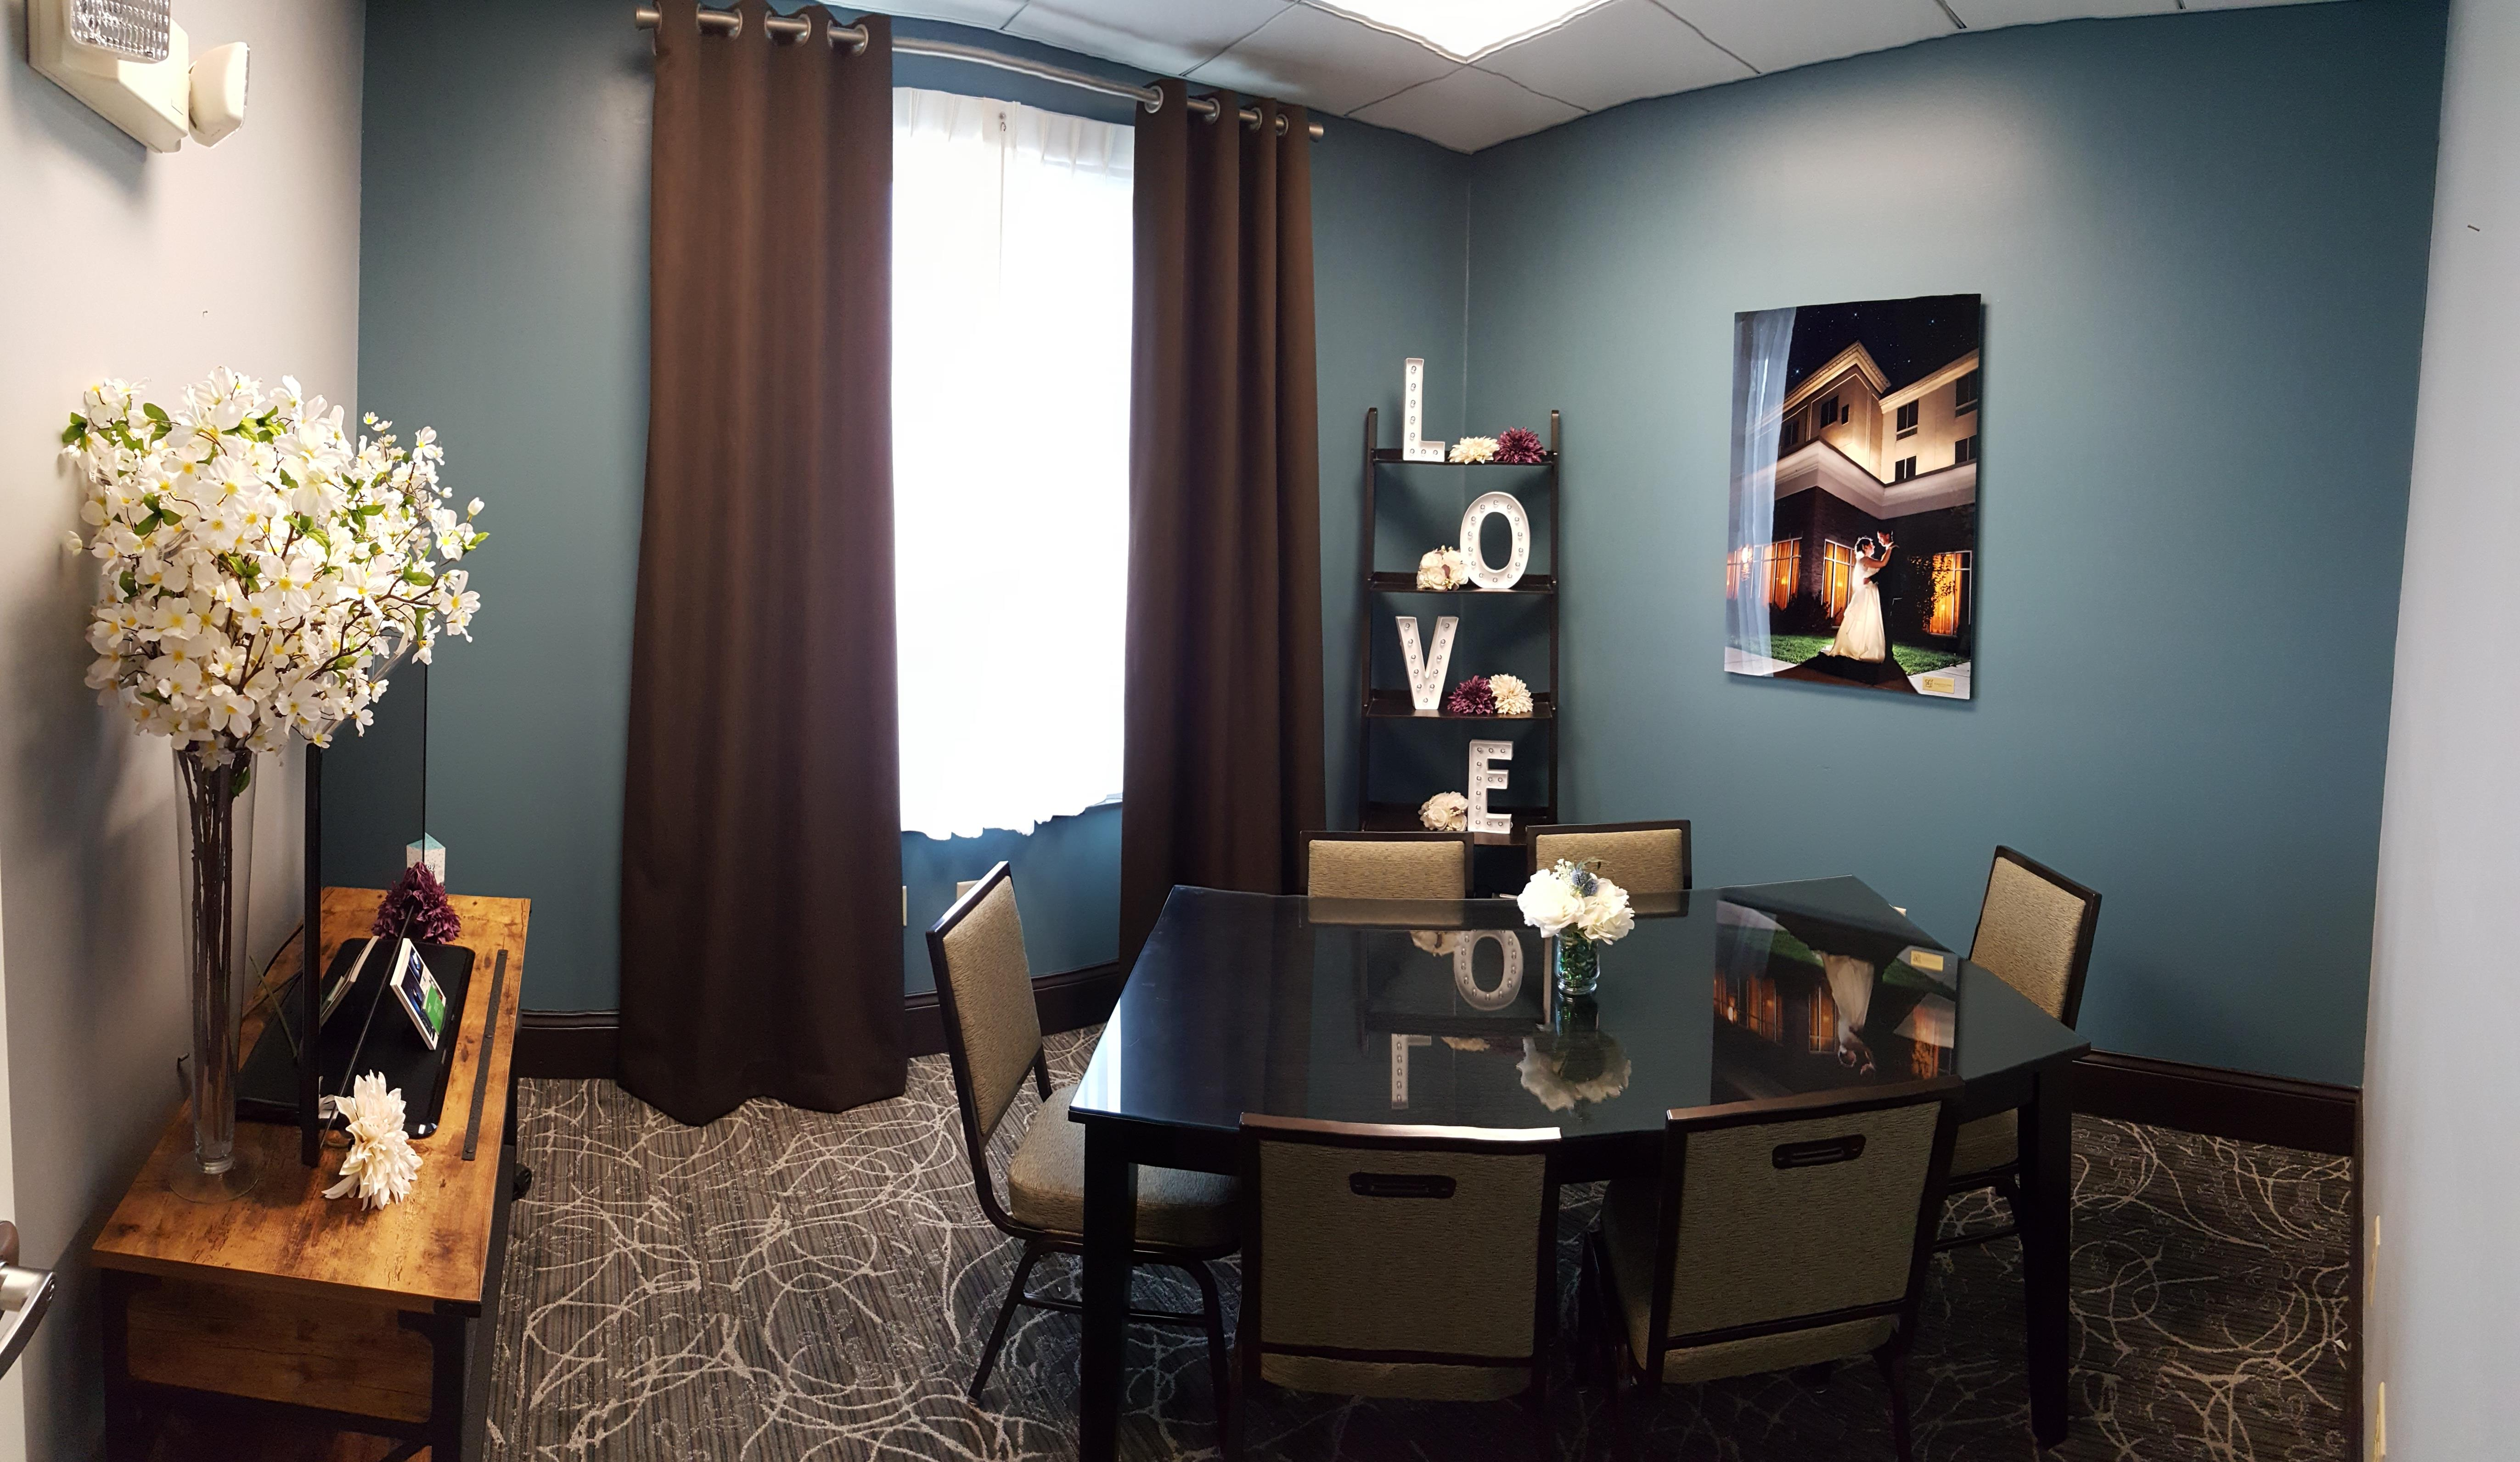 Holiday Inn & Suites - Holiday Room